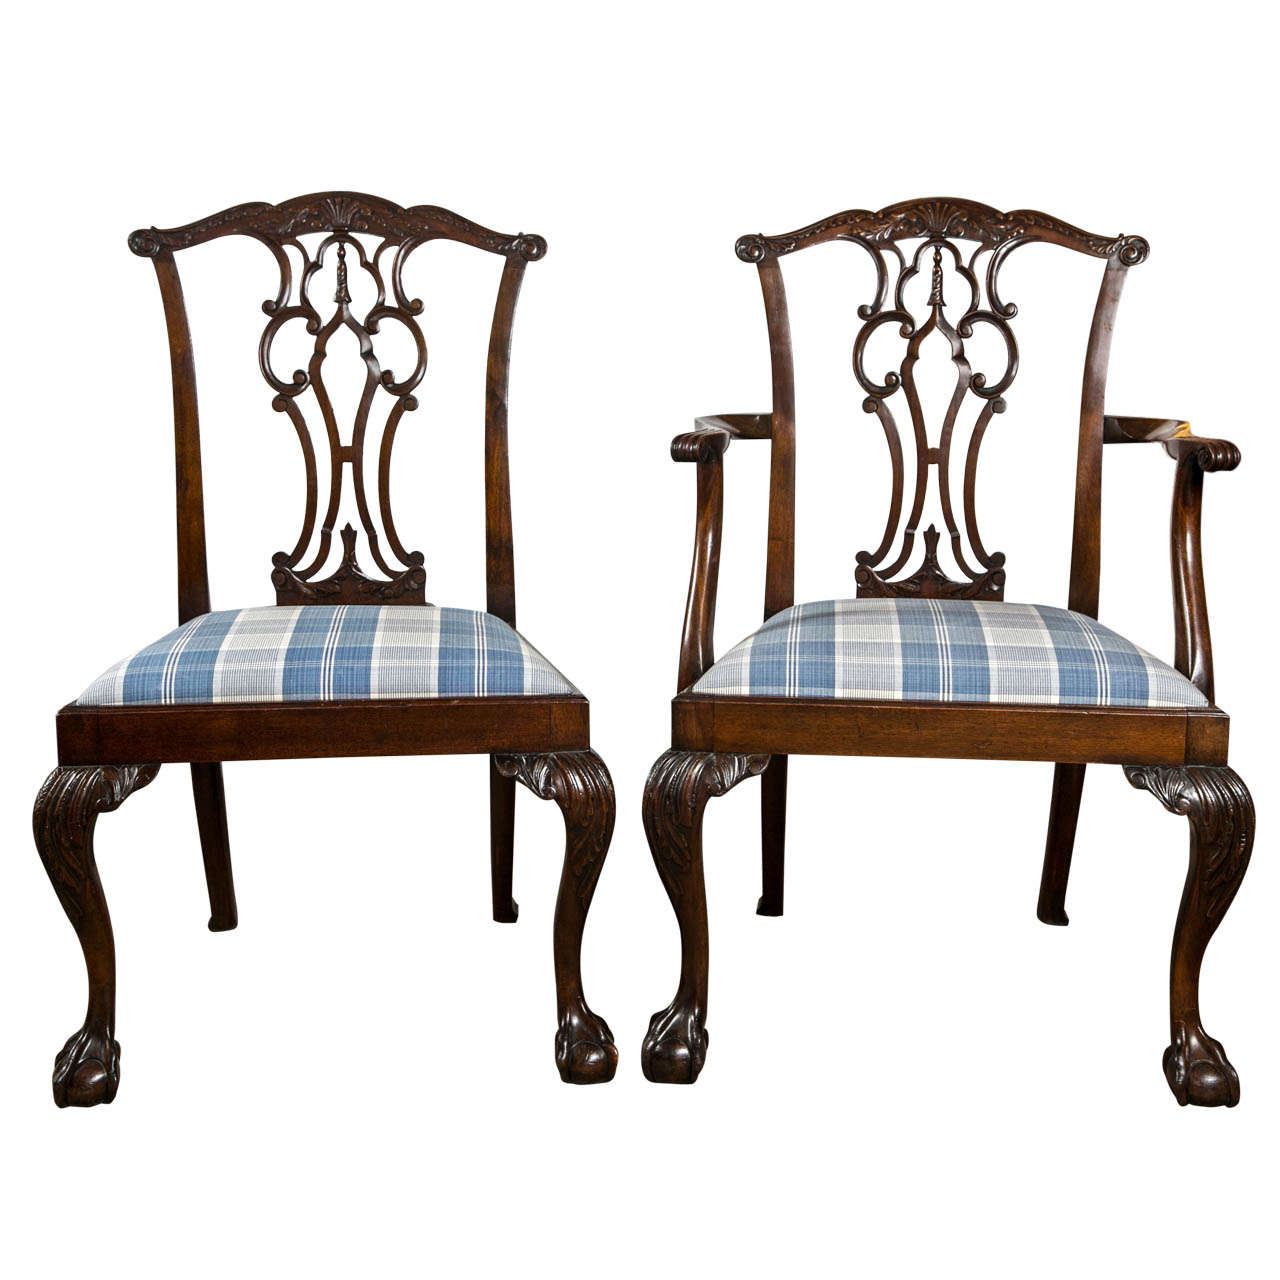 feet for chairs counter height with arms set of eight chippendale dining ball and claw